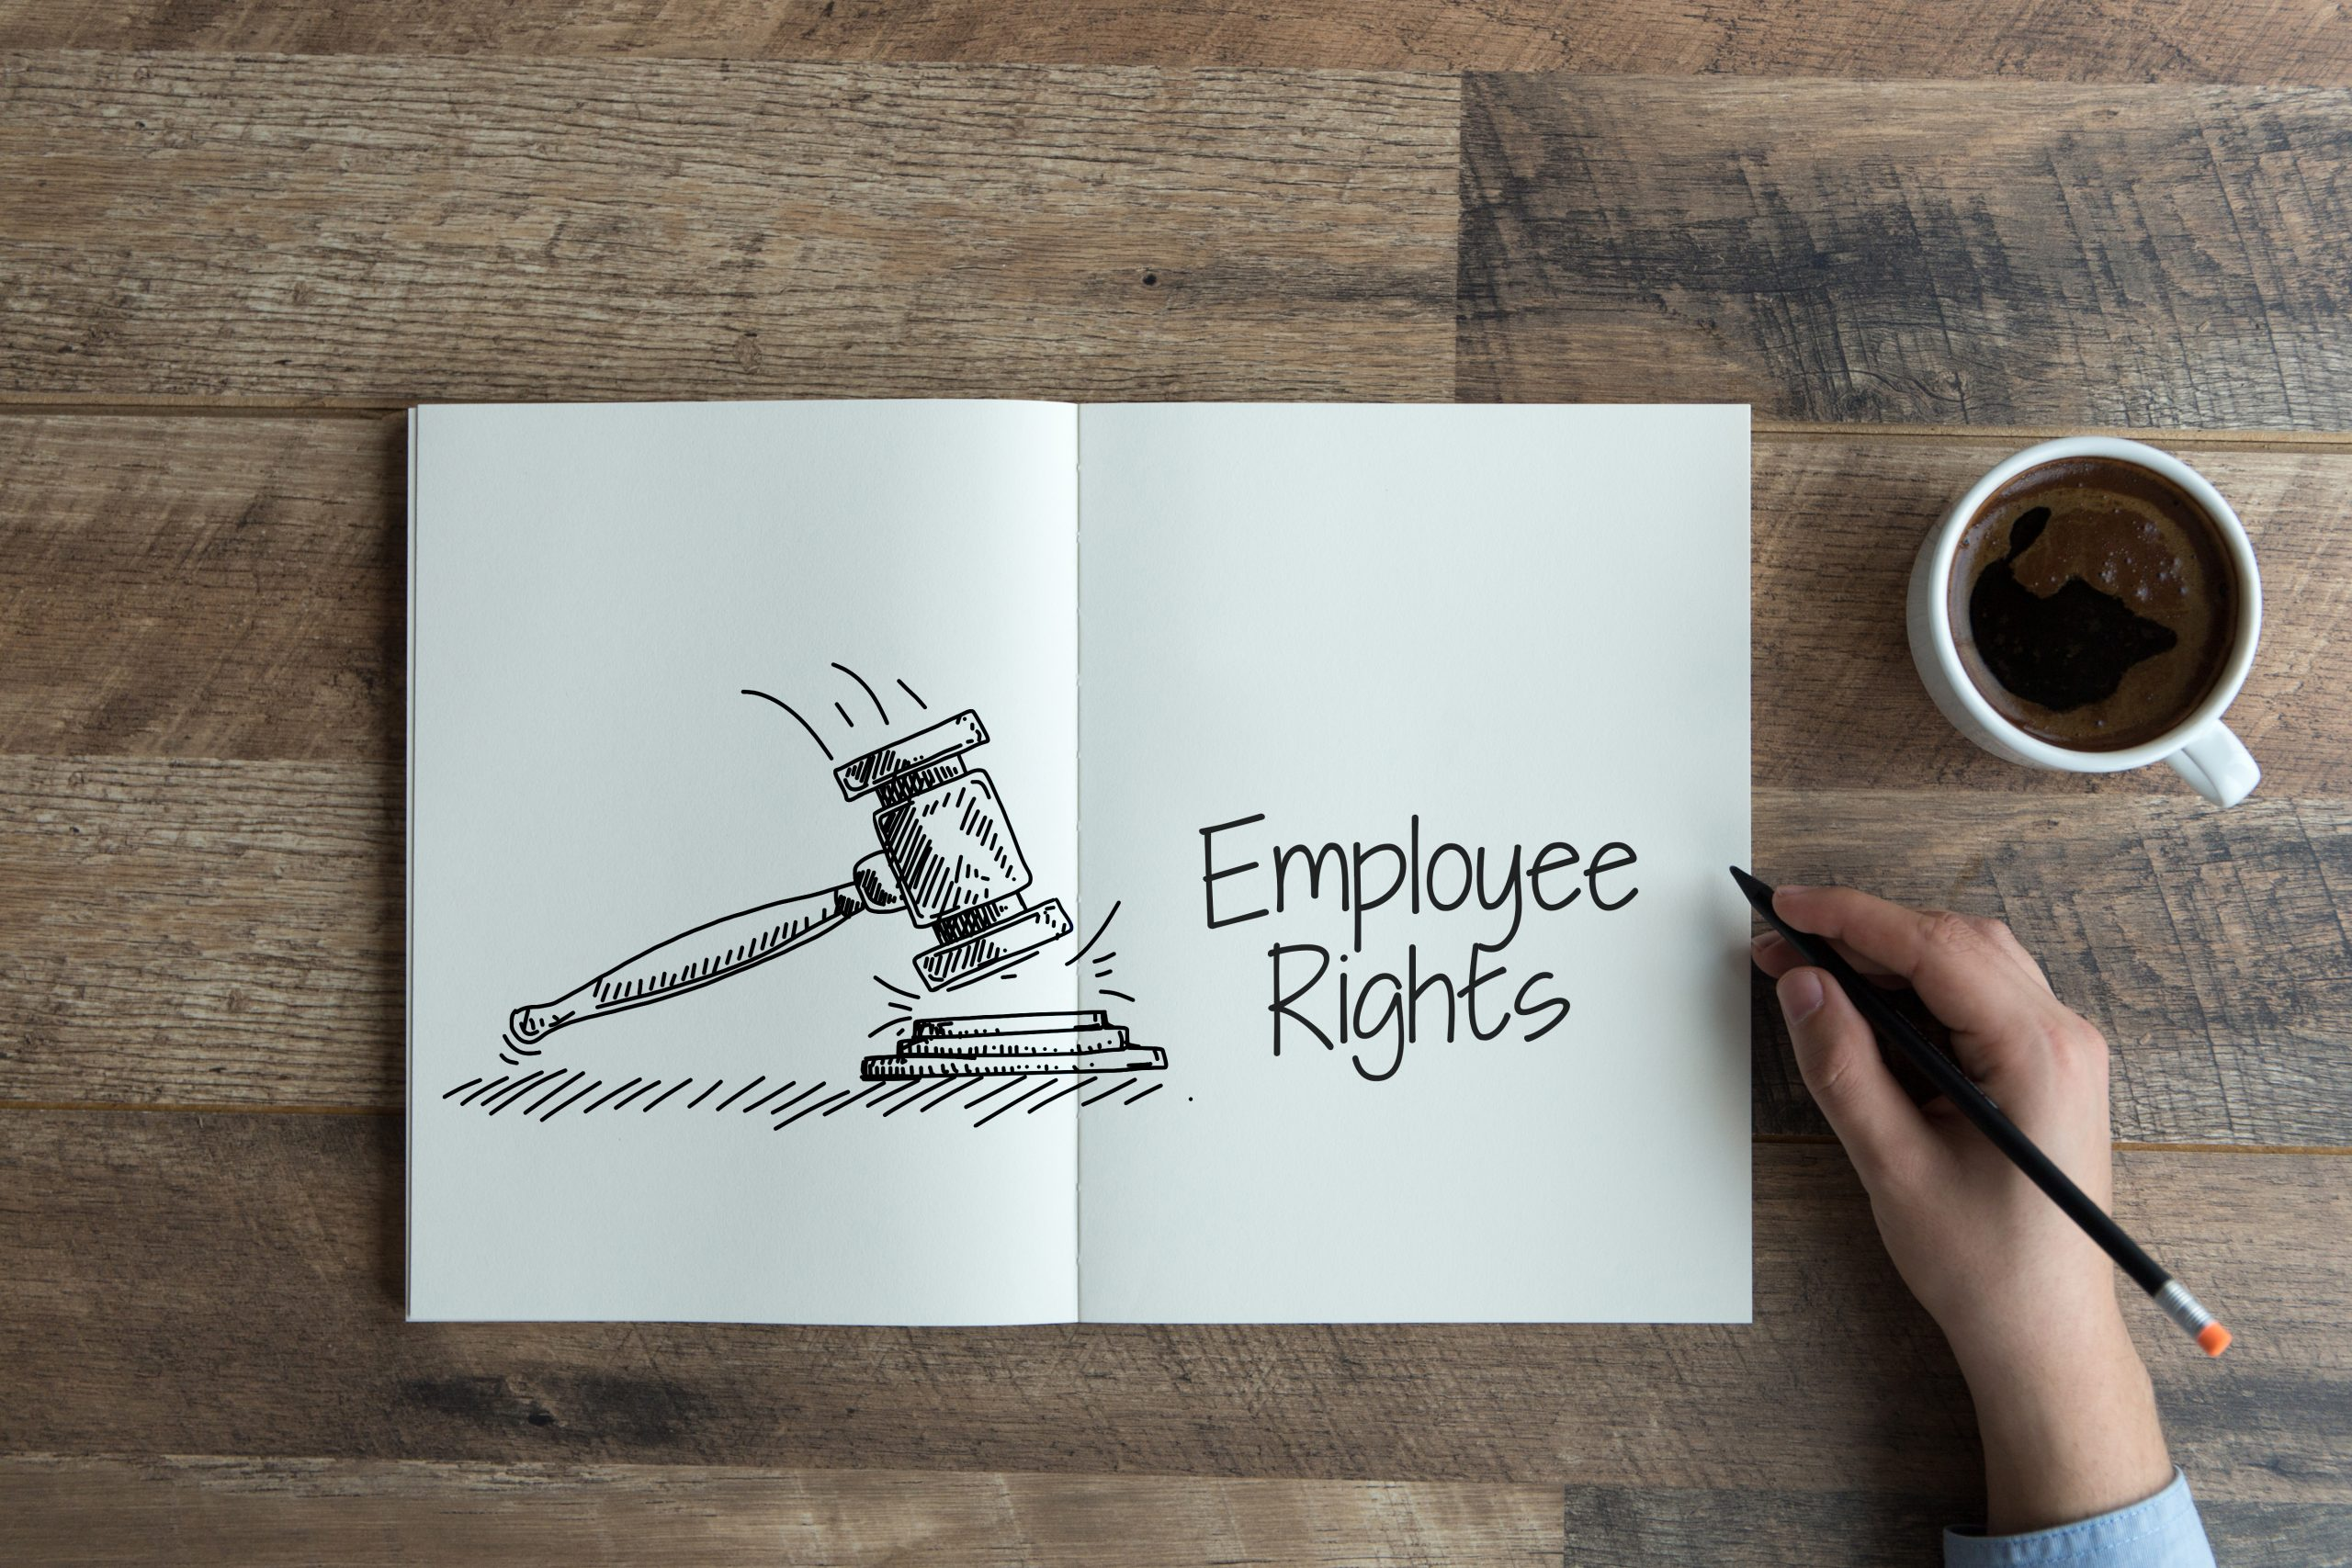 4 Facts You Should Know About Workers' Rights